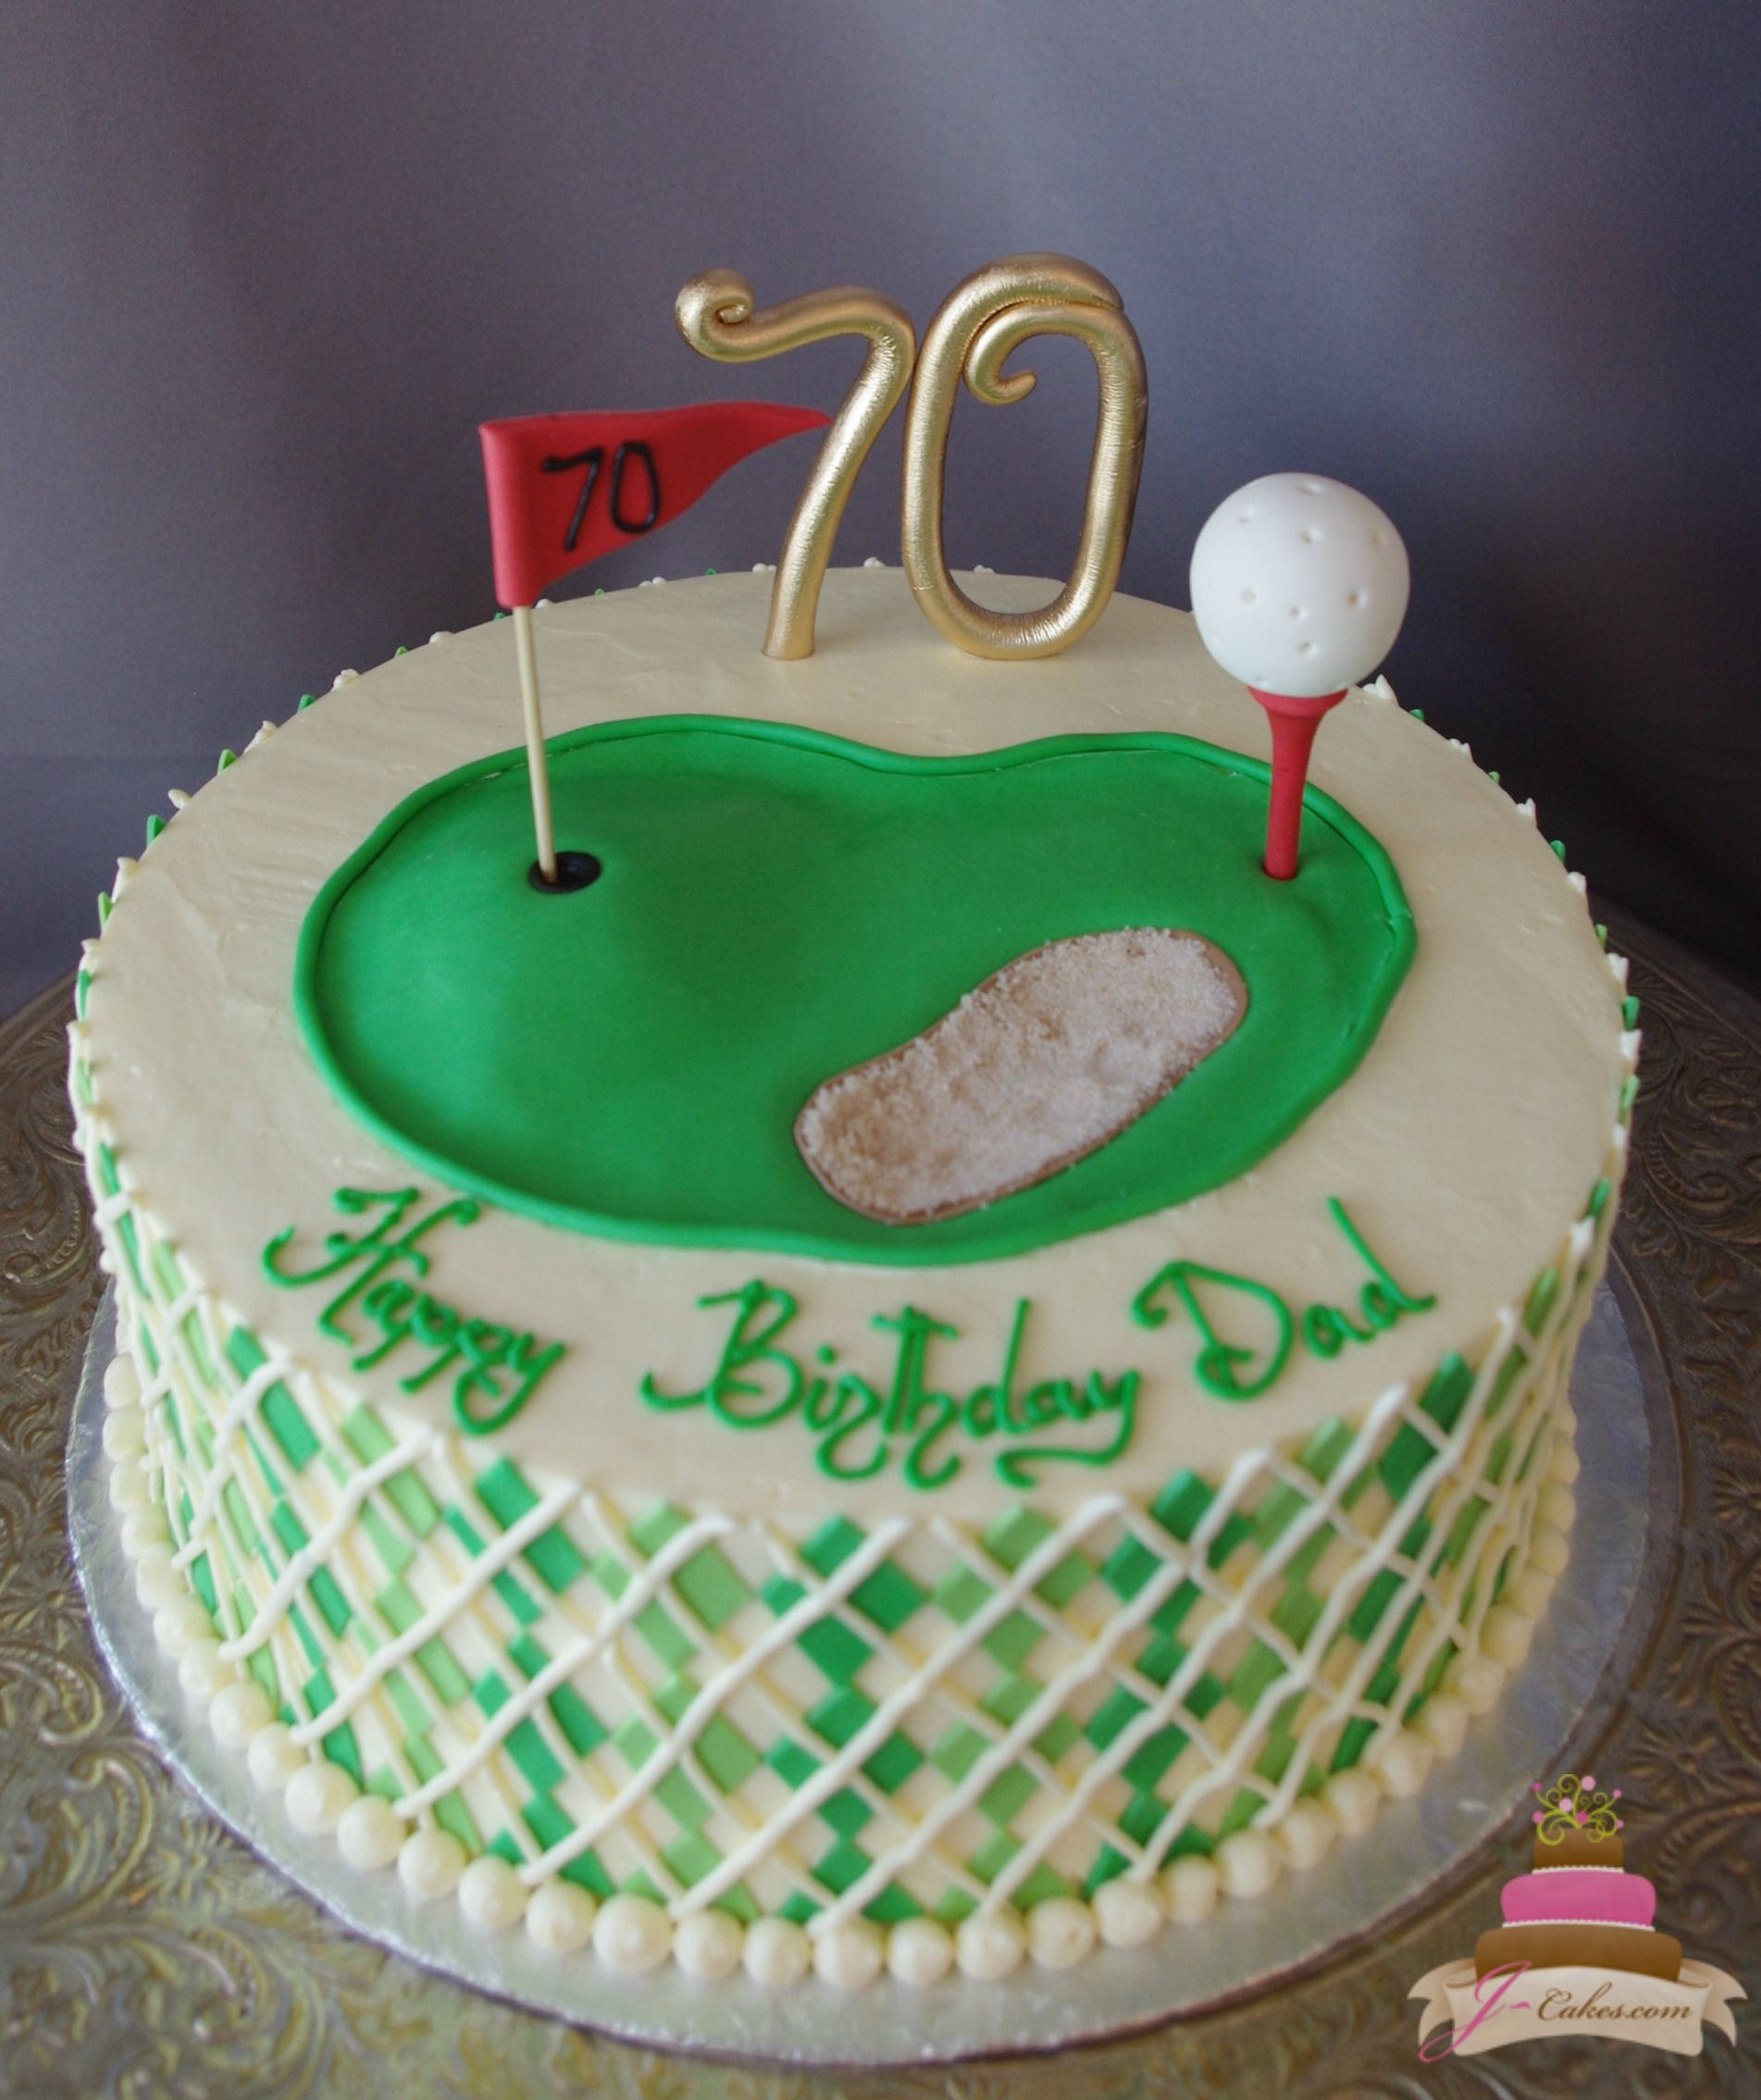 169 Golf Theme Birthday Cake 70th Adult Cakes Dad